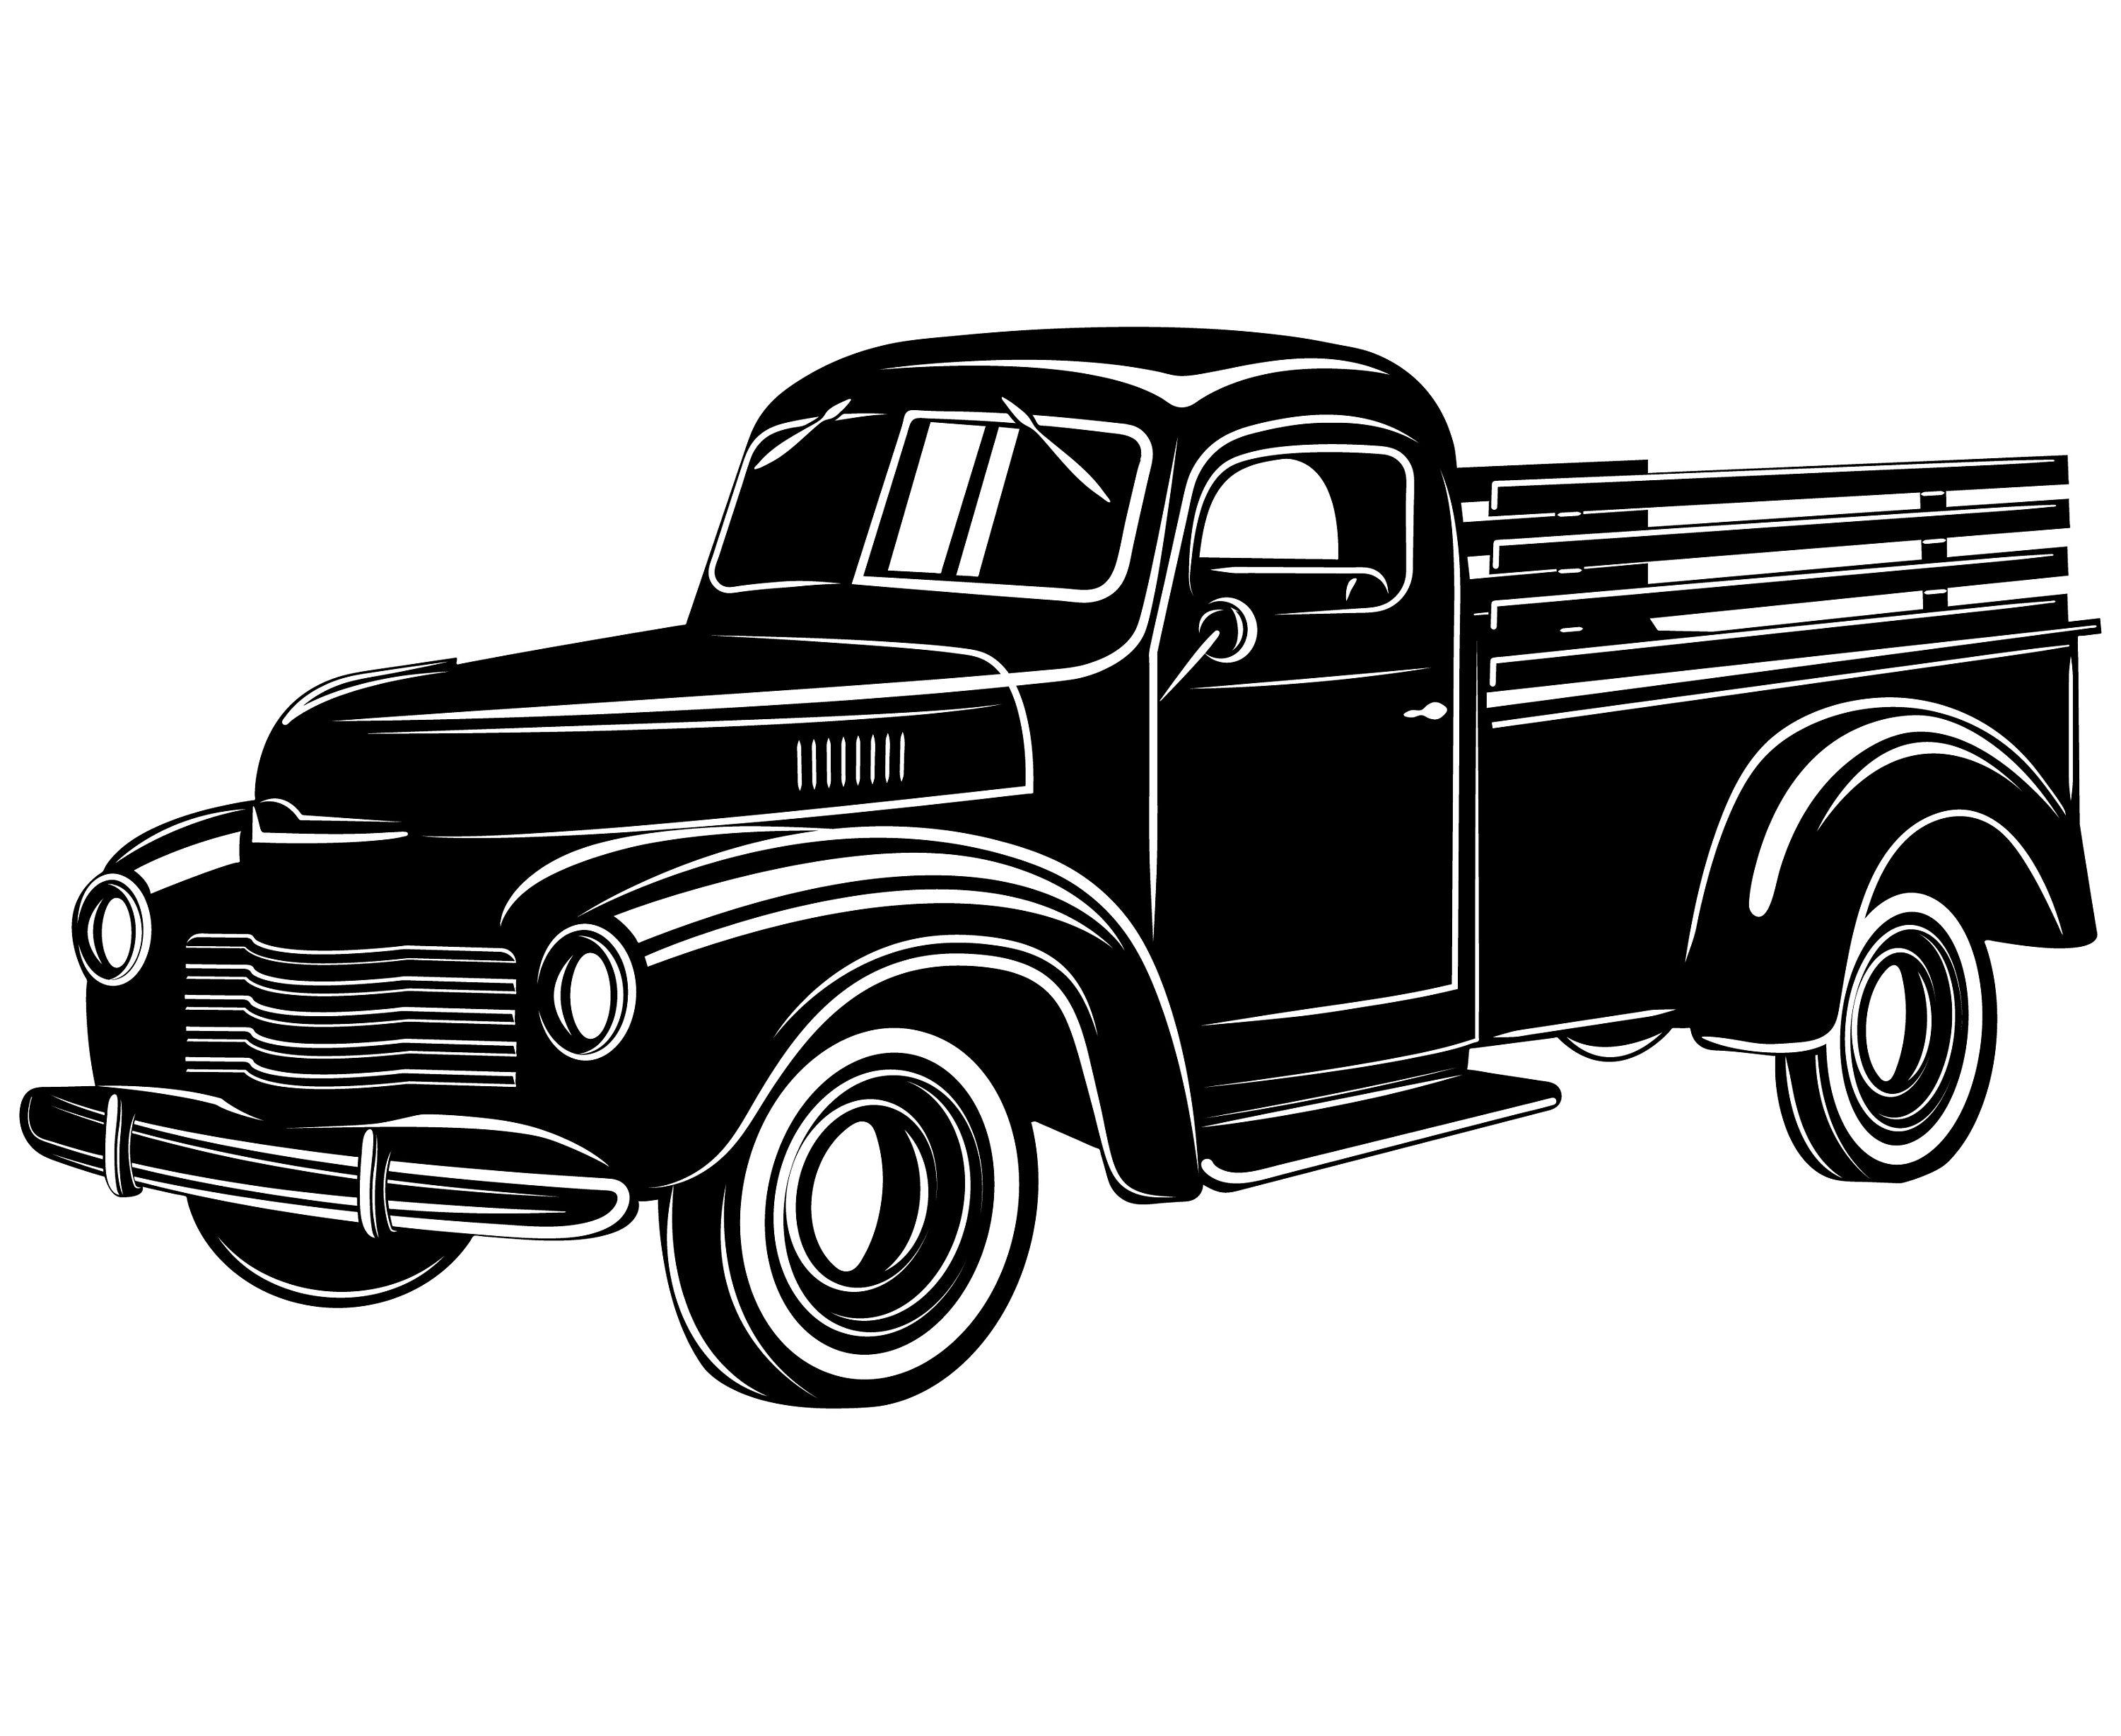 Truck Pickup Vintage Old Pick up SilhouetteSVGGraphics | Etsy